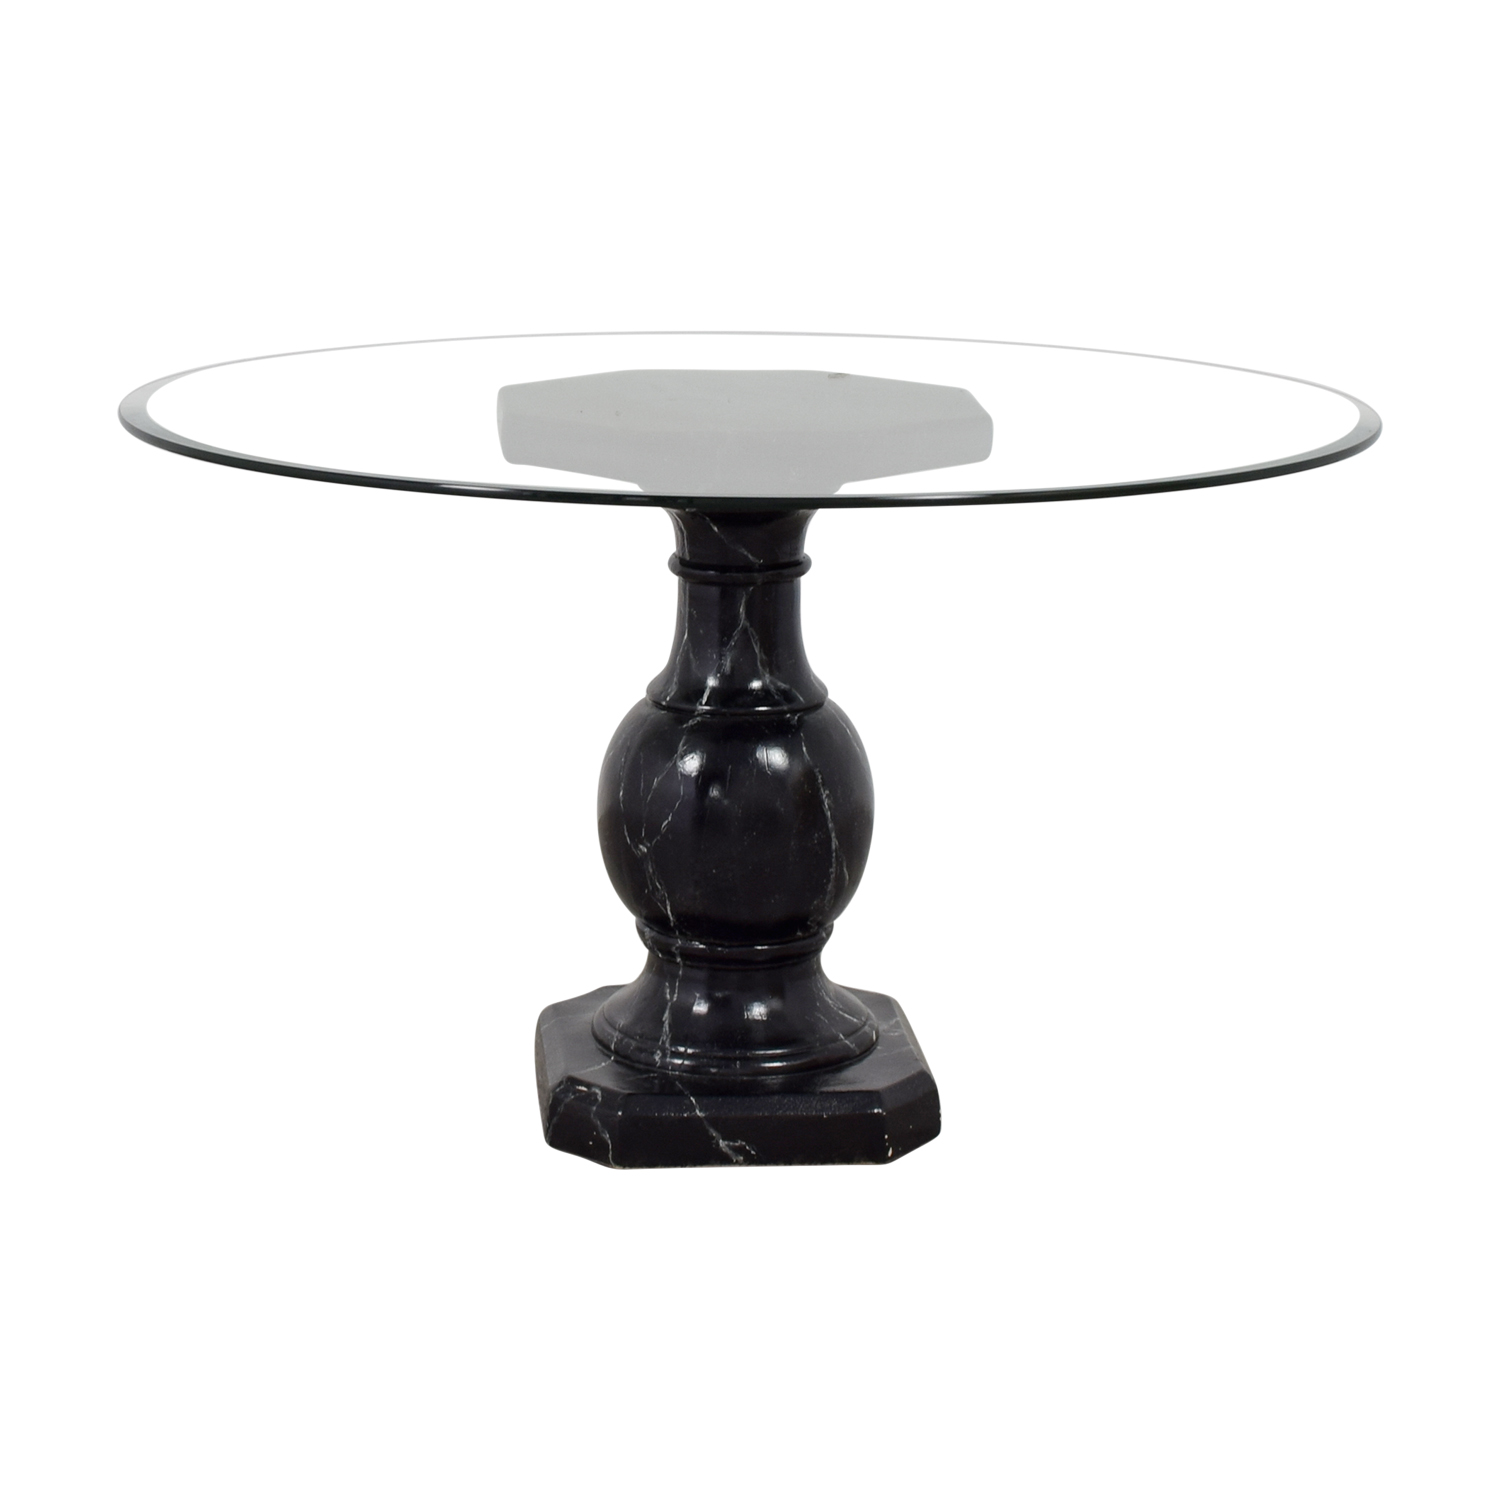 Ballard Designs Ballard Designs Dining Table with Glass Top discount